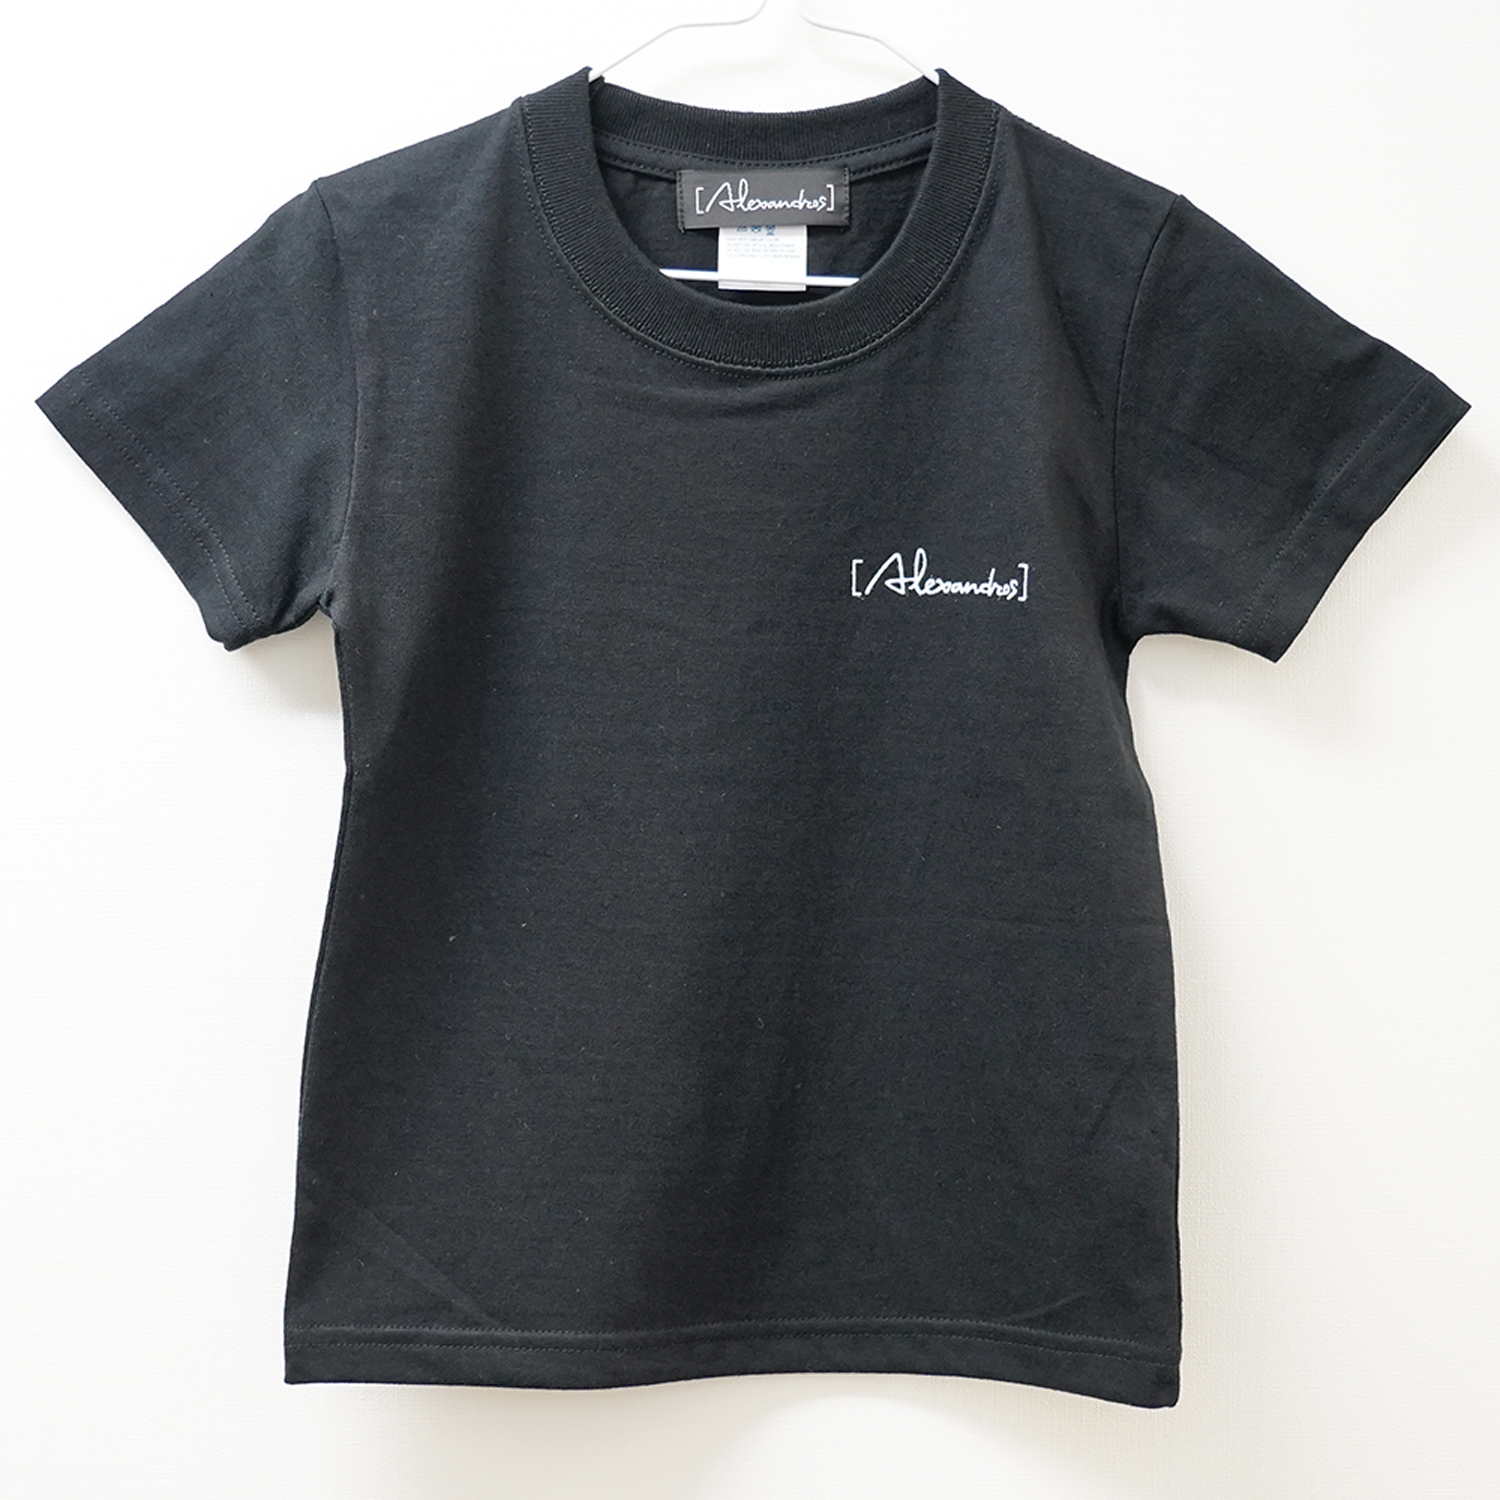 【SALE】10th Anniv. Limited TEE 【 120 size (Kids size)】